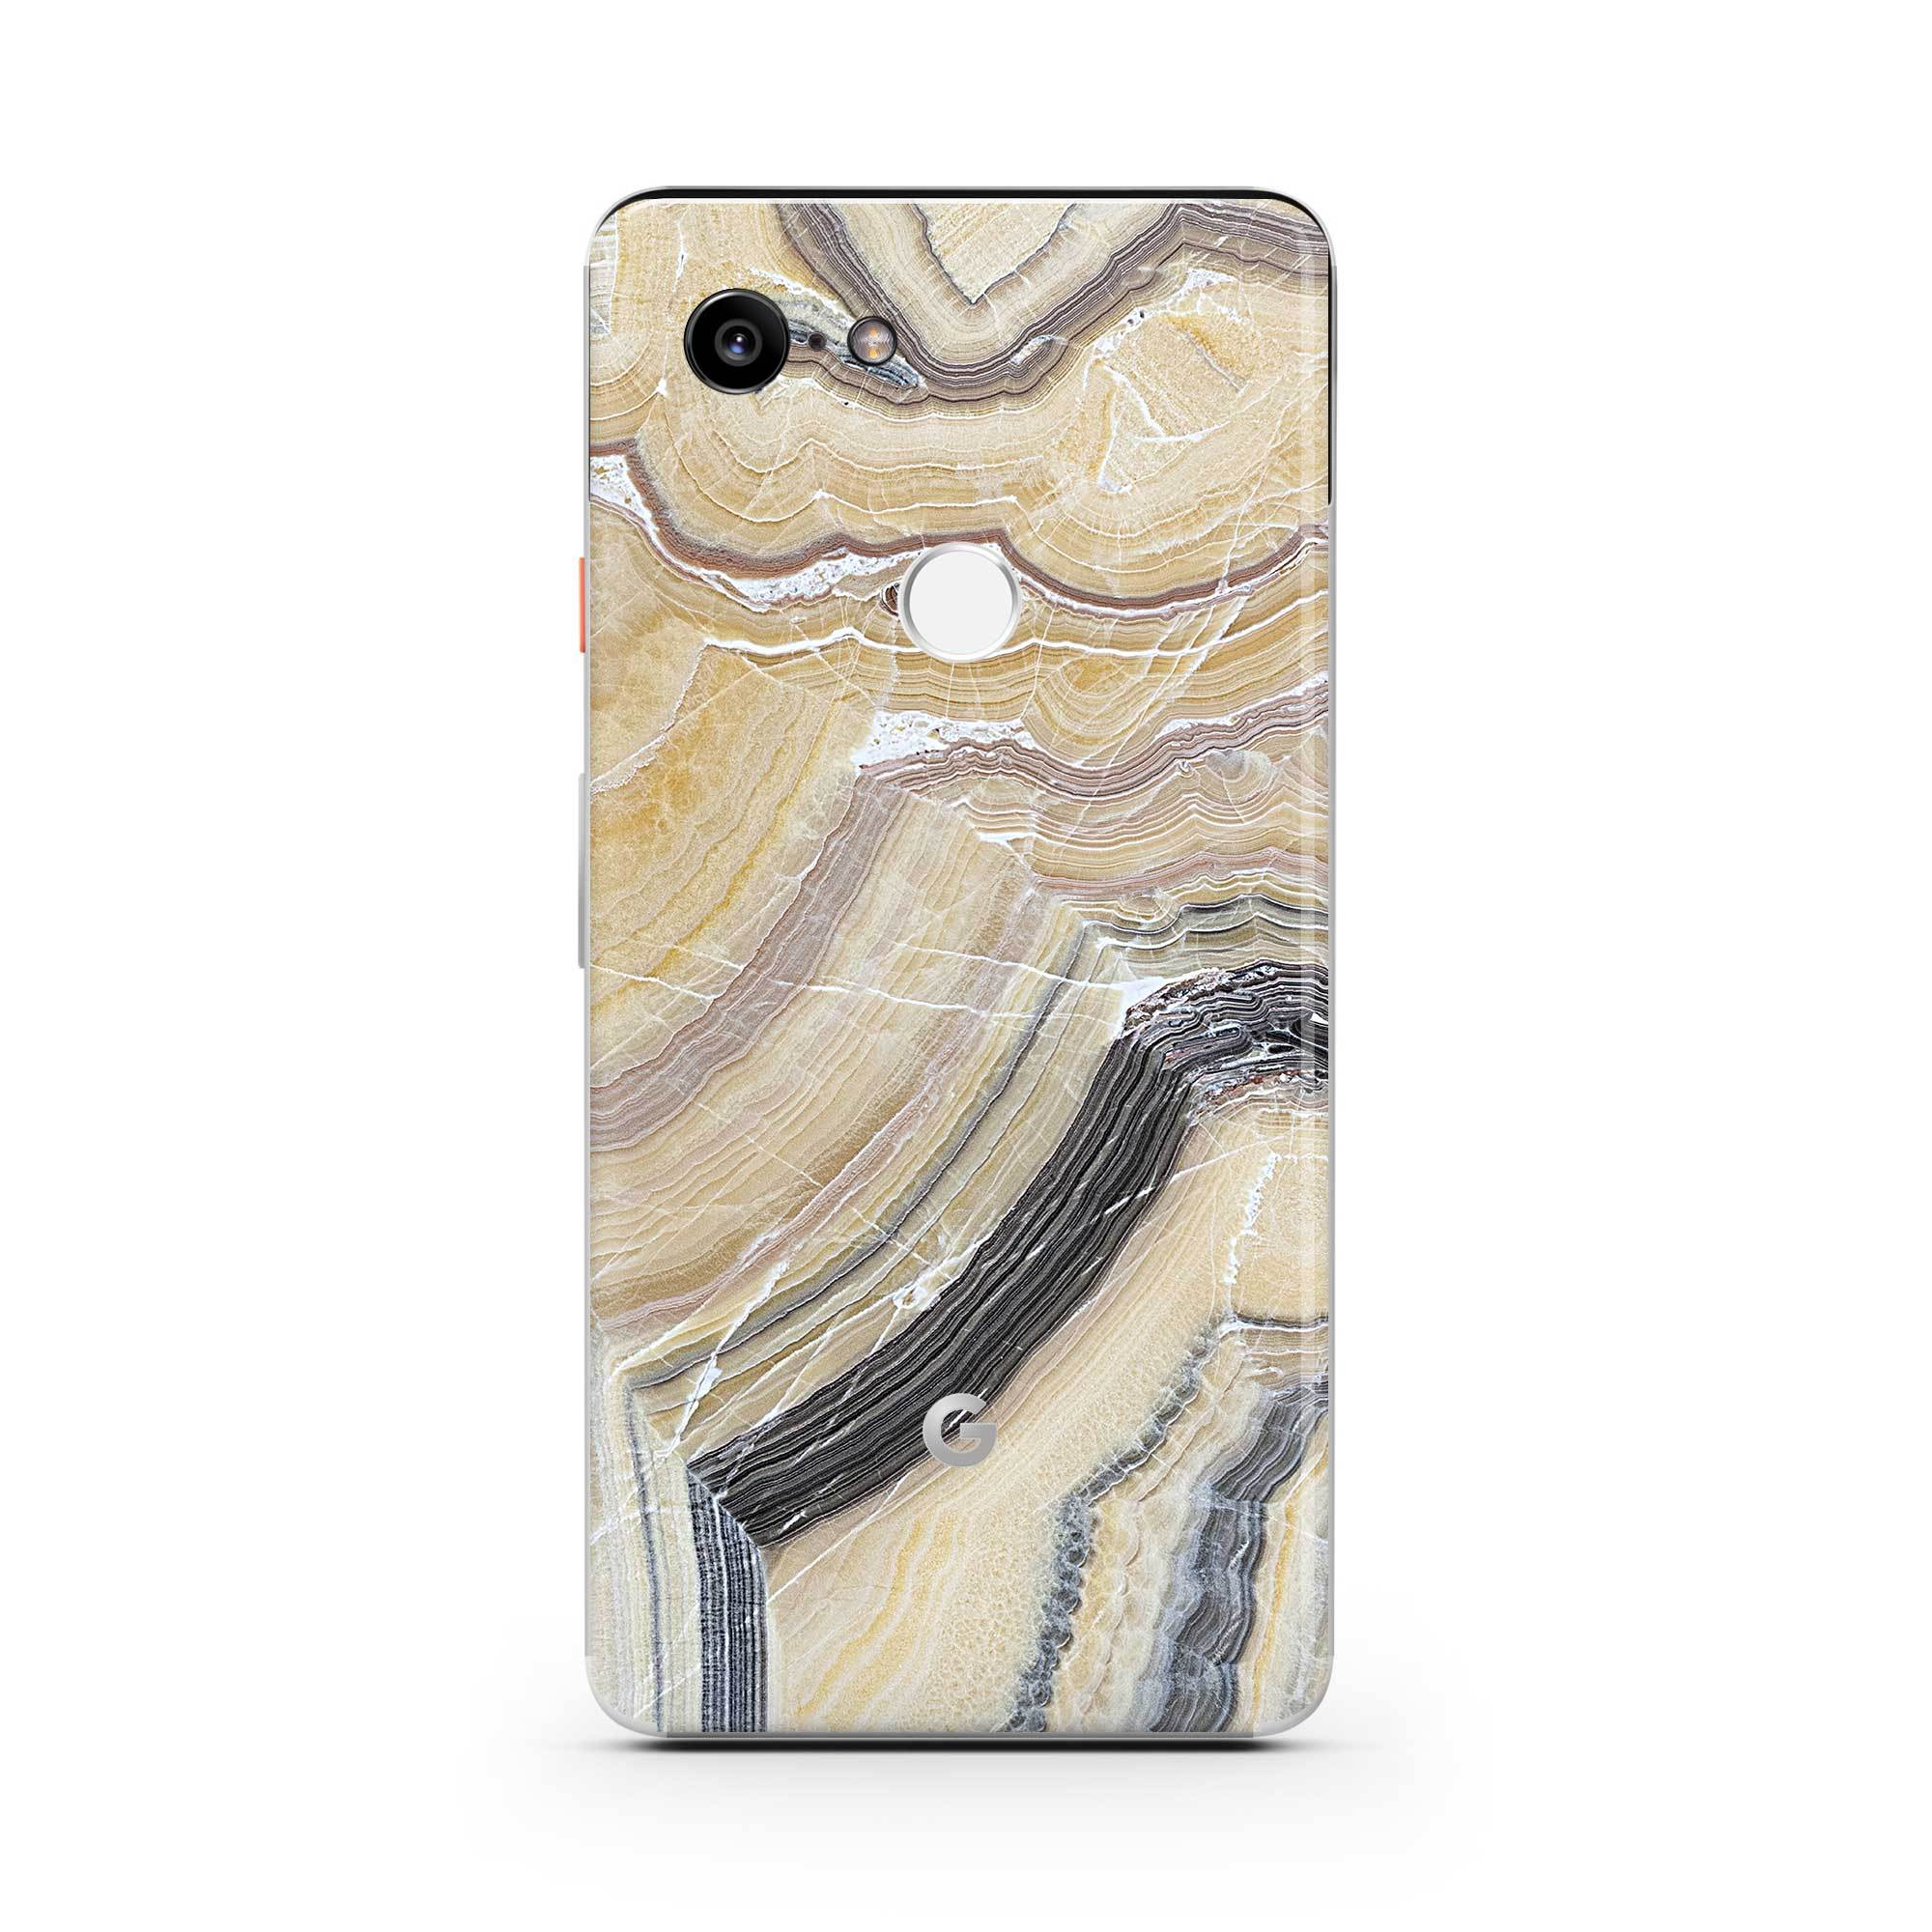 Butter Marble Pixel 3a Skin + Case